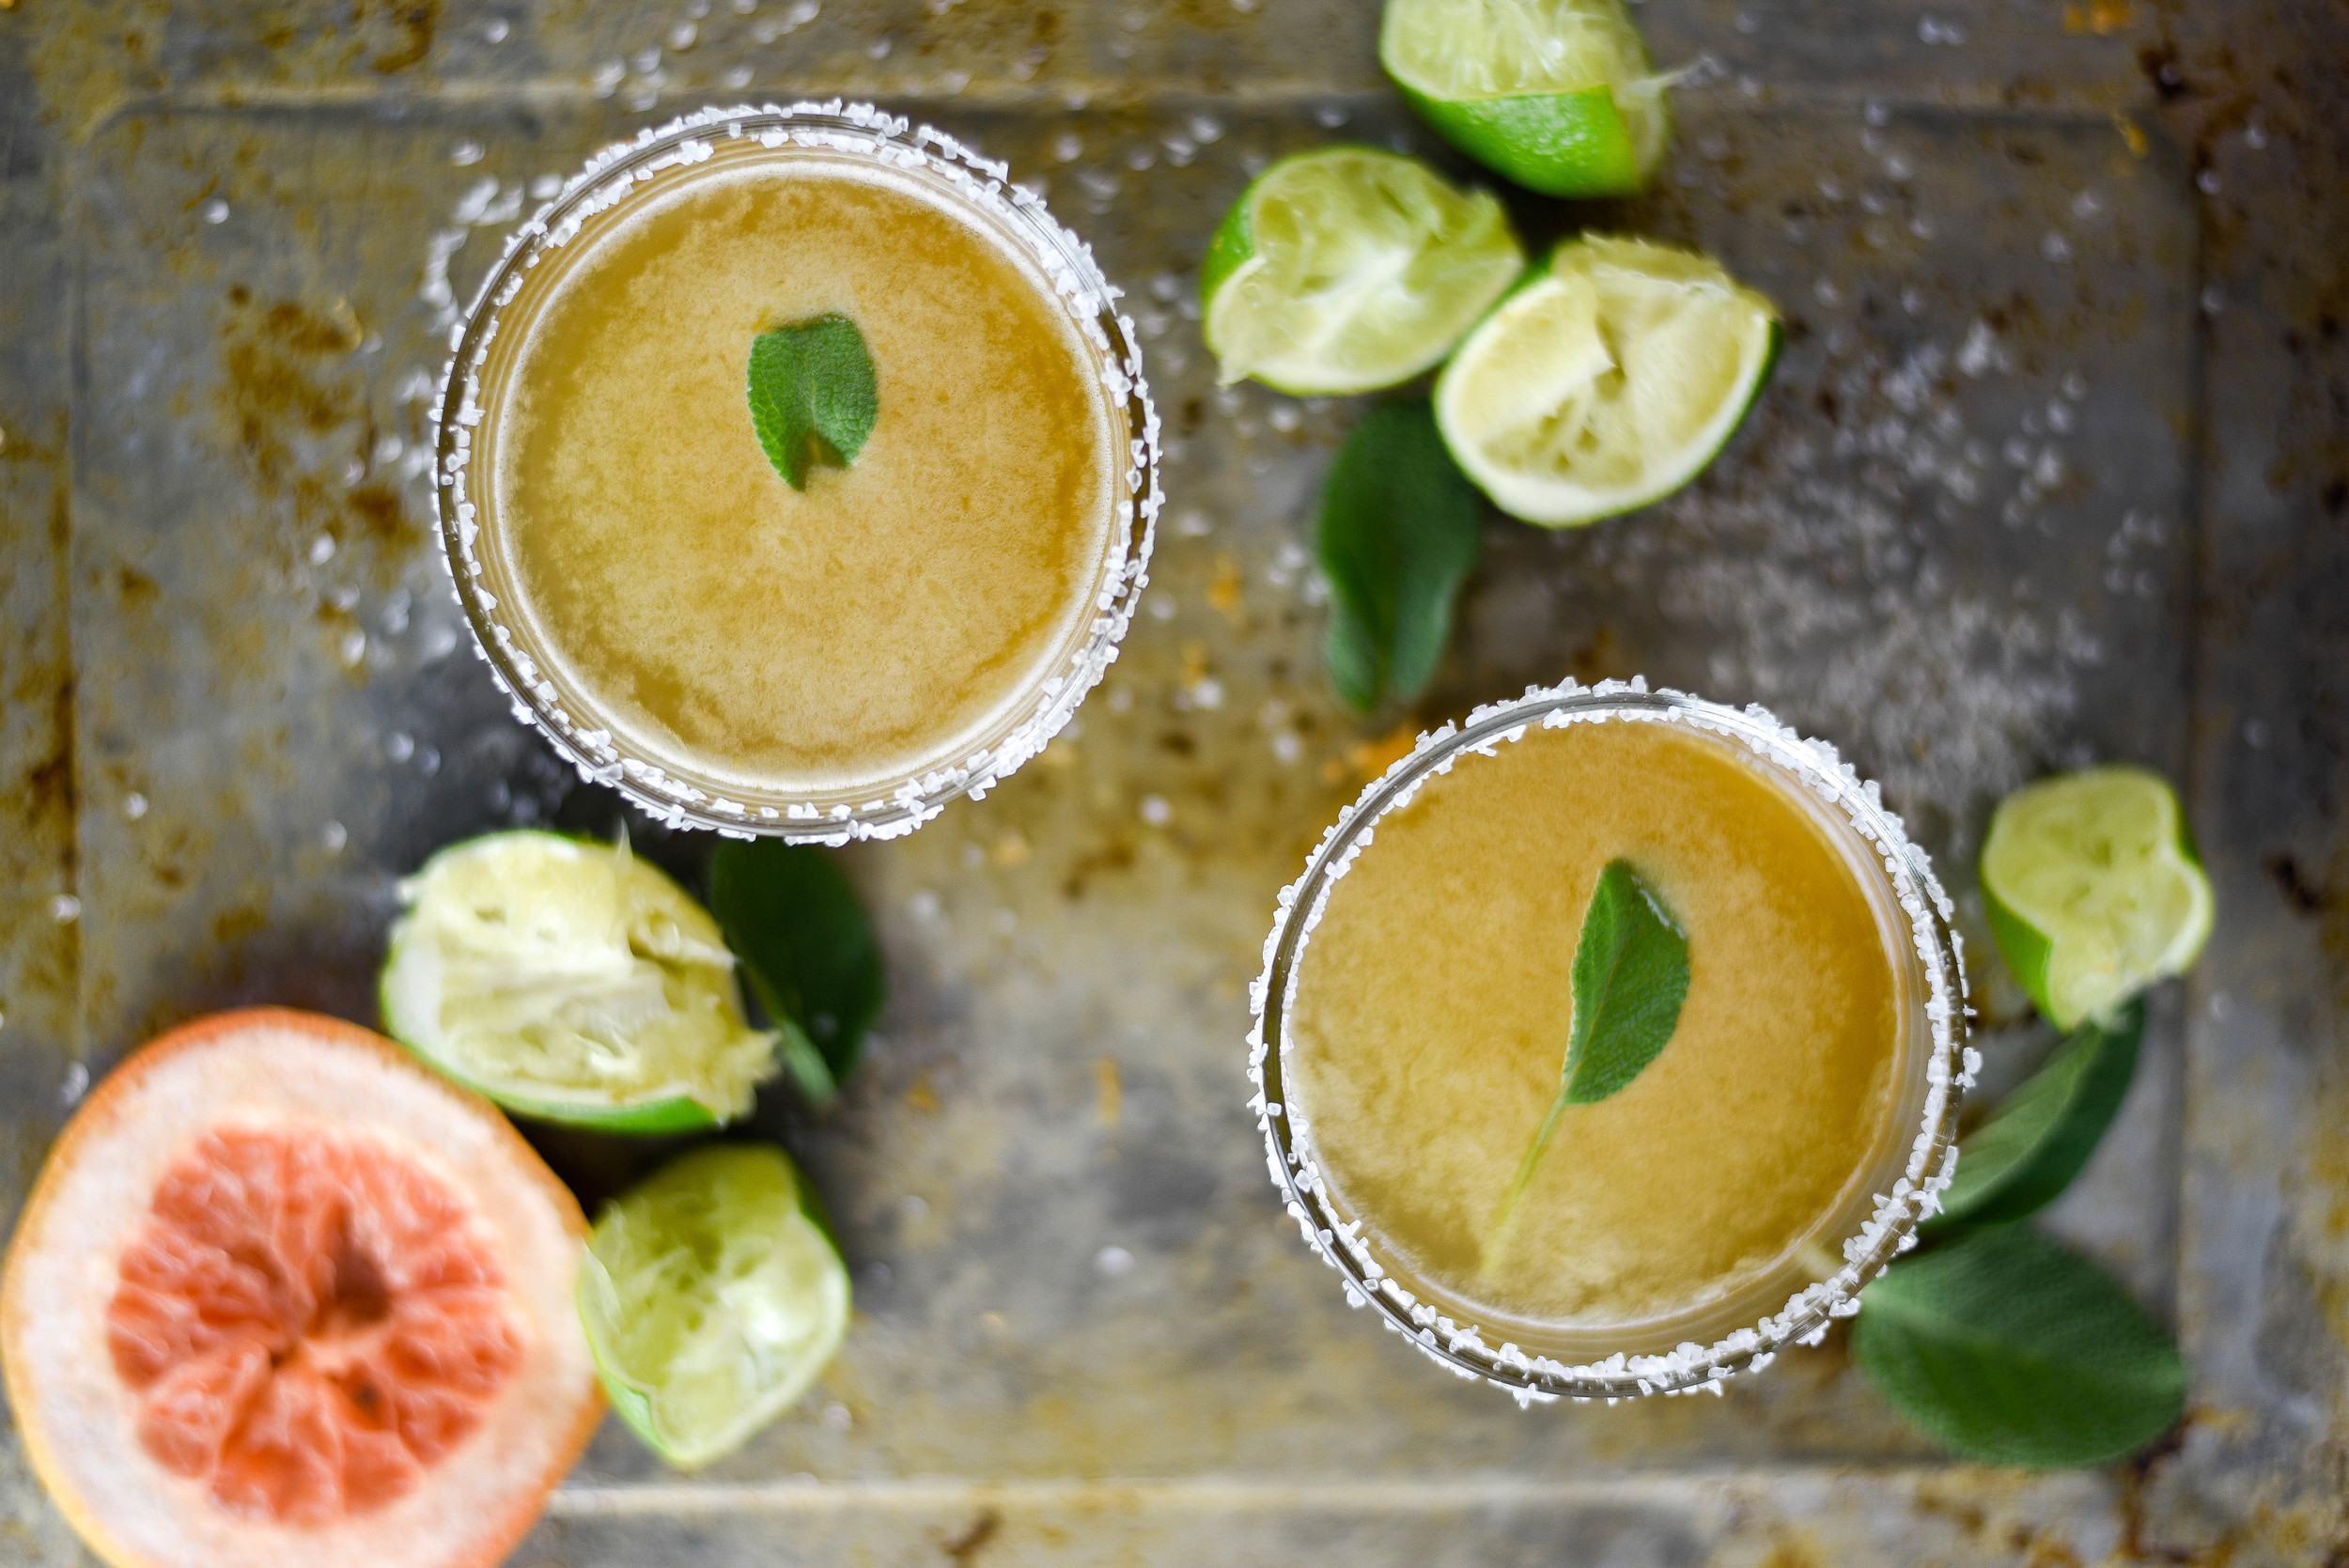 Grapefruit & Tequila with Sage - great Paloma recipe! boxwoodavenue.com